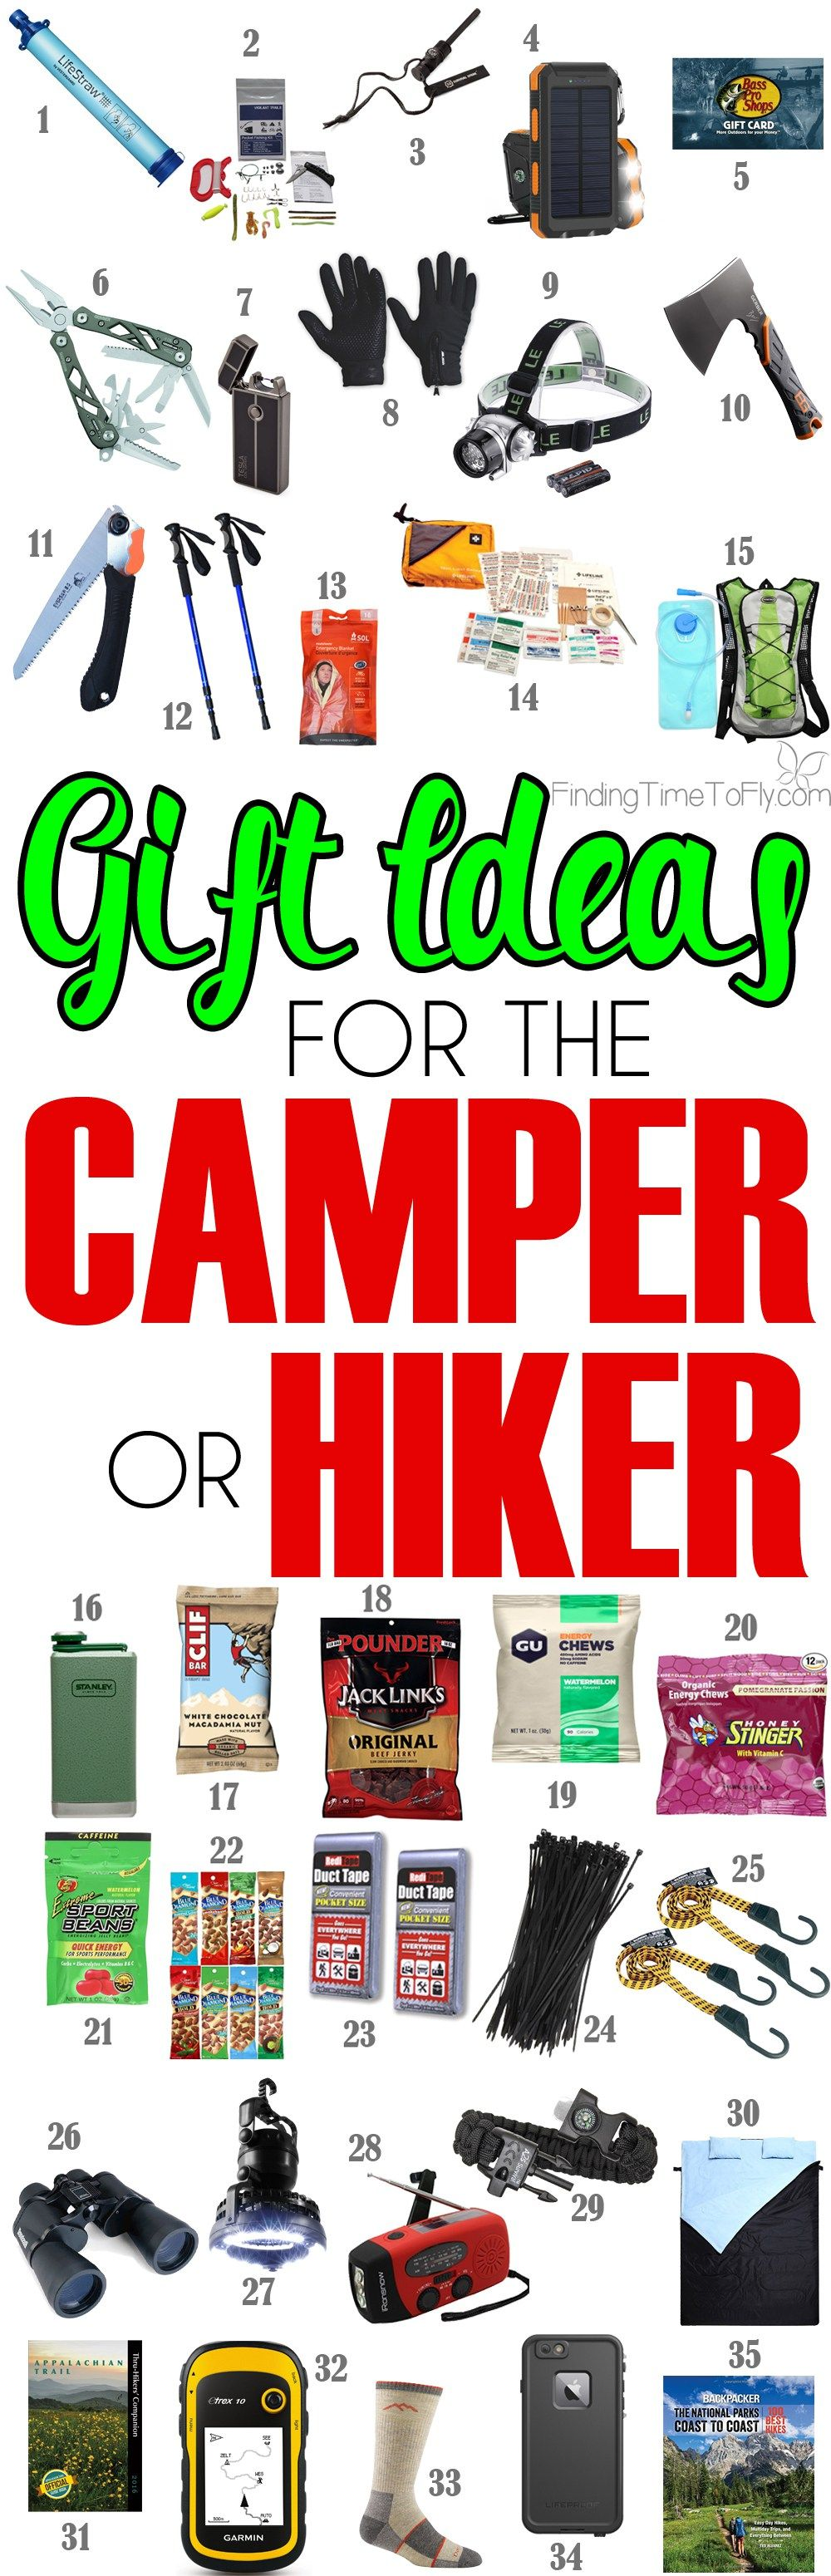 These Are Great Gift Ideas For The Outdoorsman Who Loves To Camp And Hike